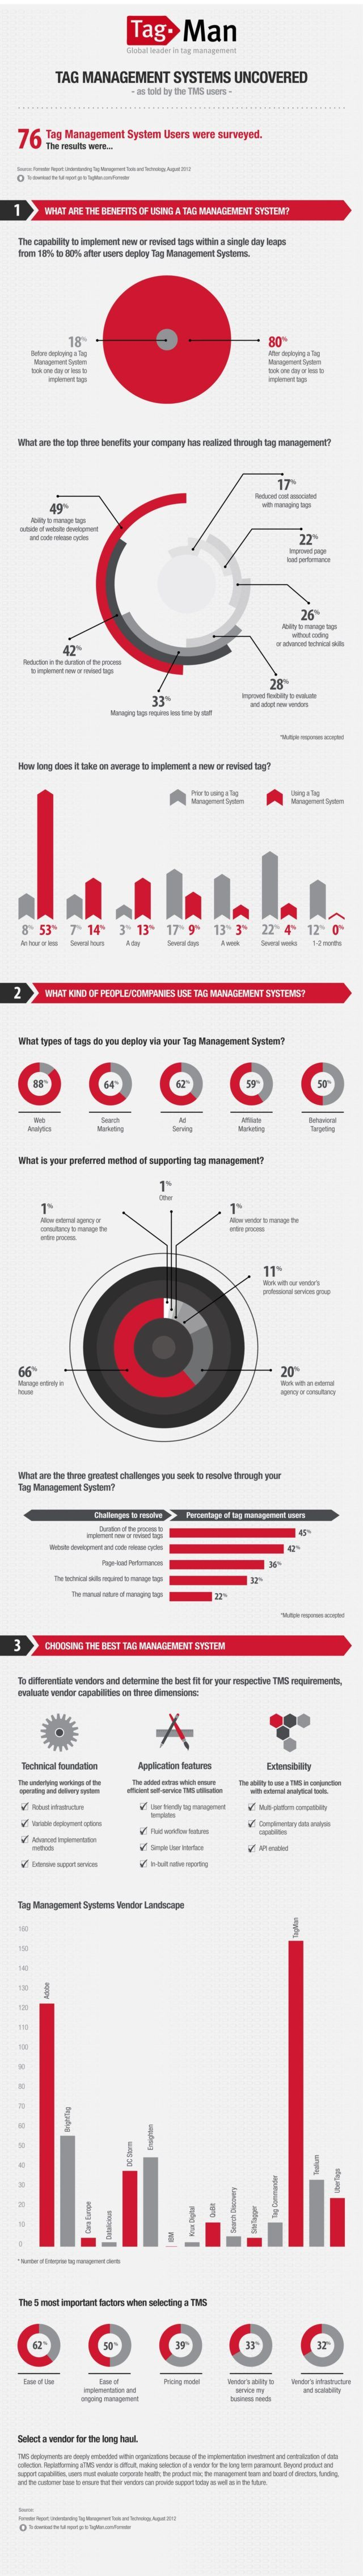 Forrester TagManagement Infographic